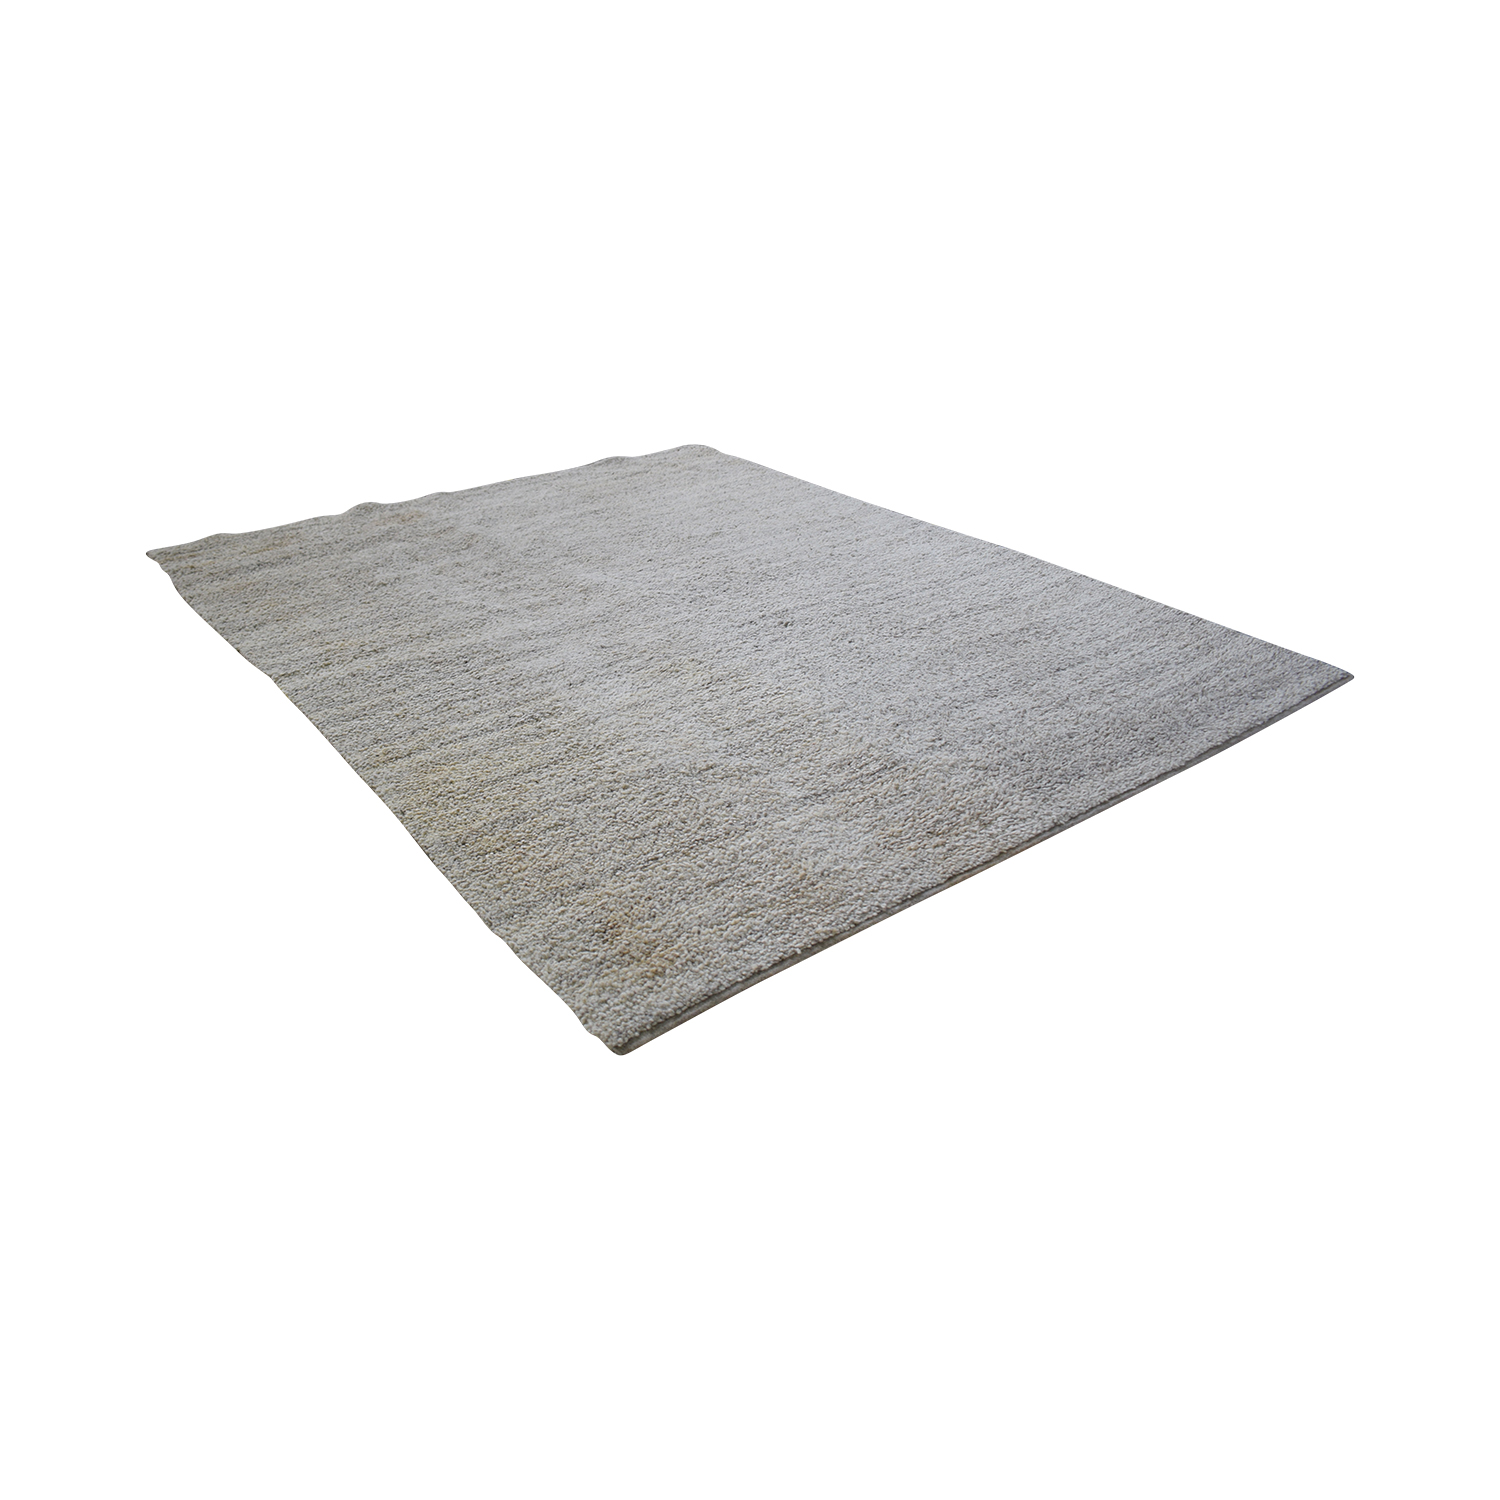 West Elm West Elm Steven Alan Solid Wool Shag Rug coupon